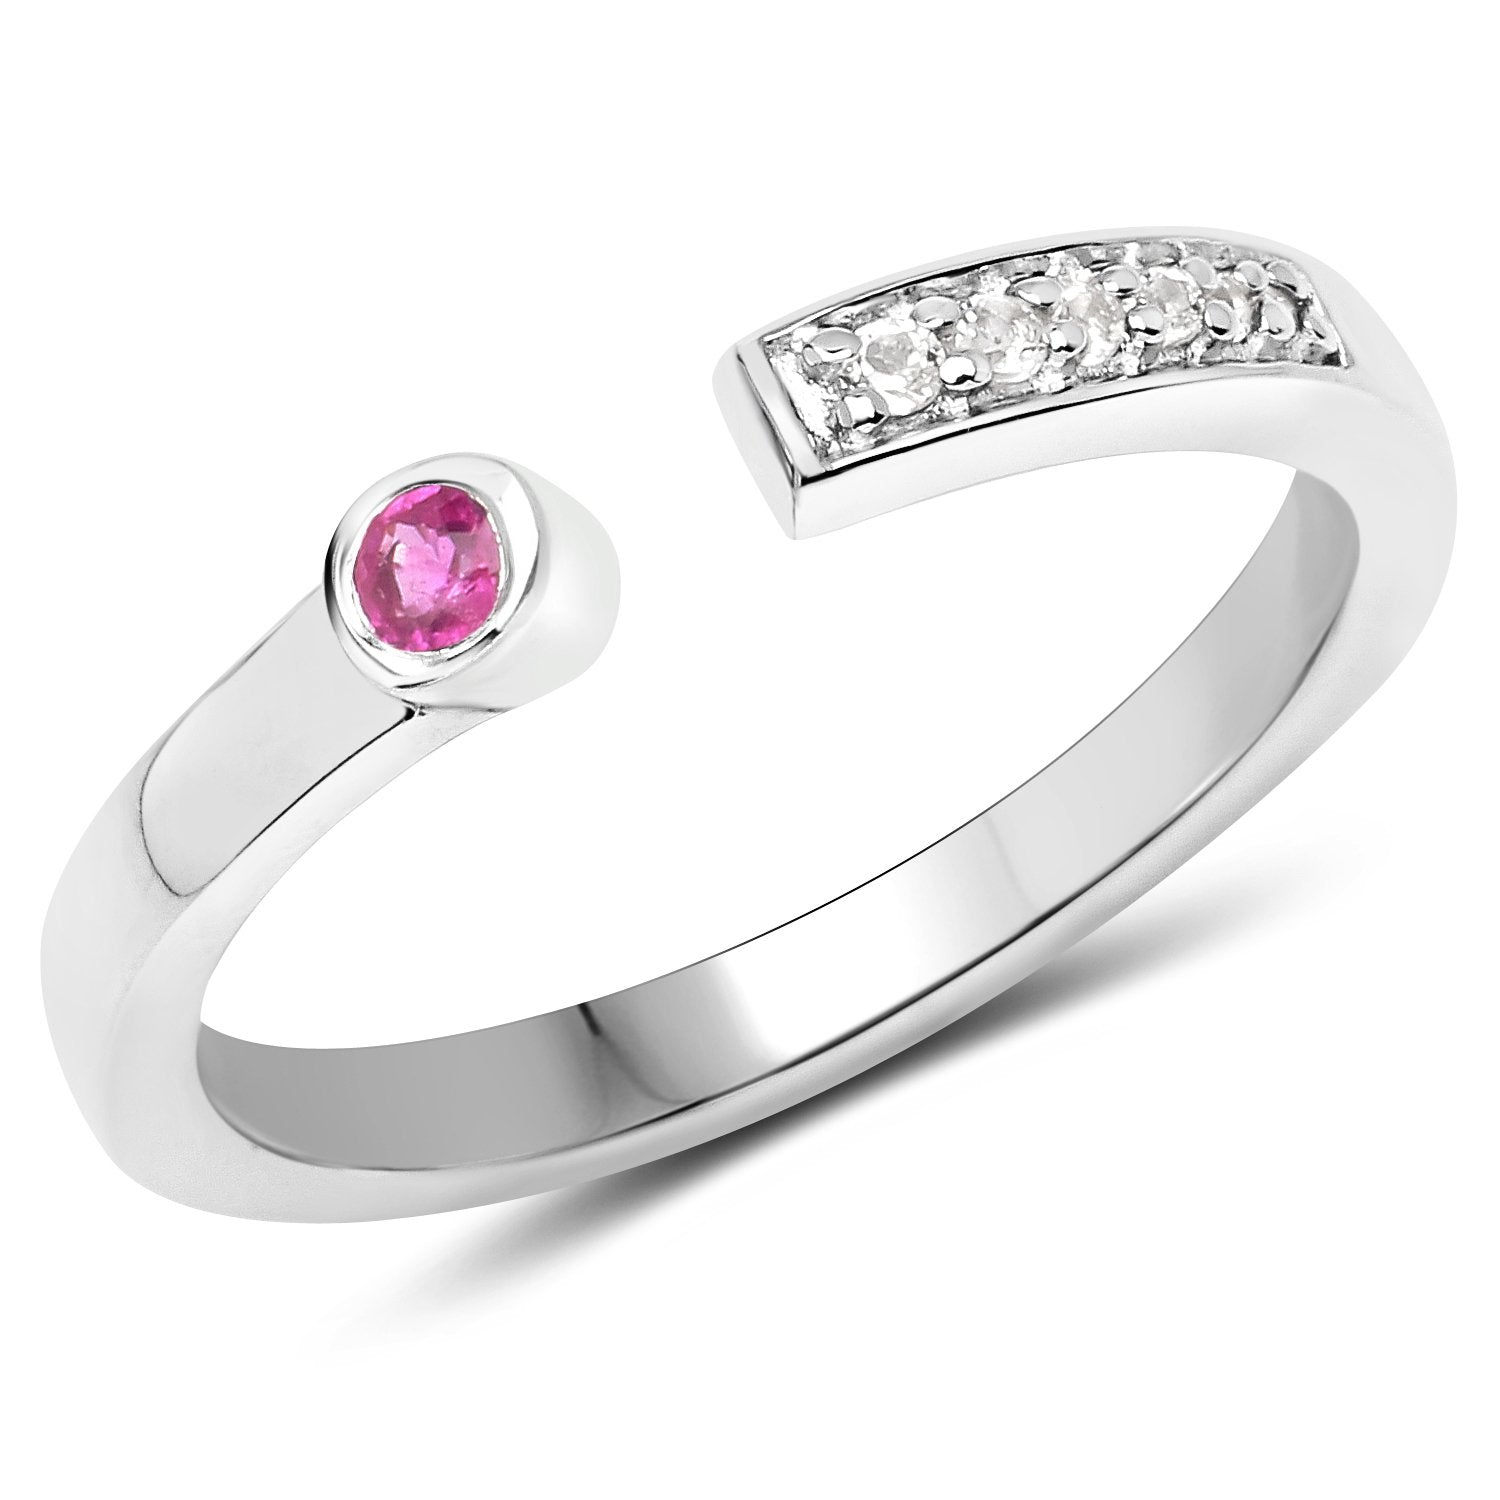 LoveHuang 0.09 Carats Genuine Ruby and White Topaz Stacking Ring Solid .925 Sterling Silver With Rhodium Plating